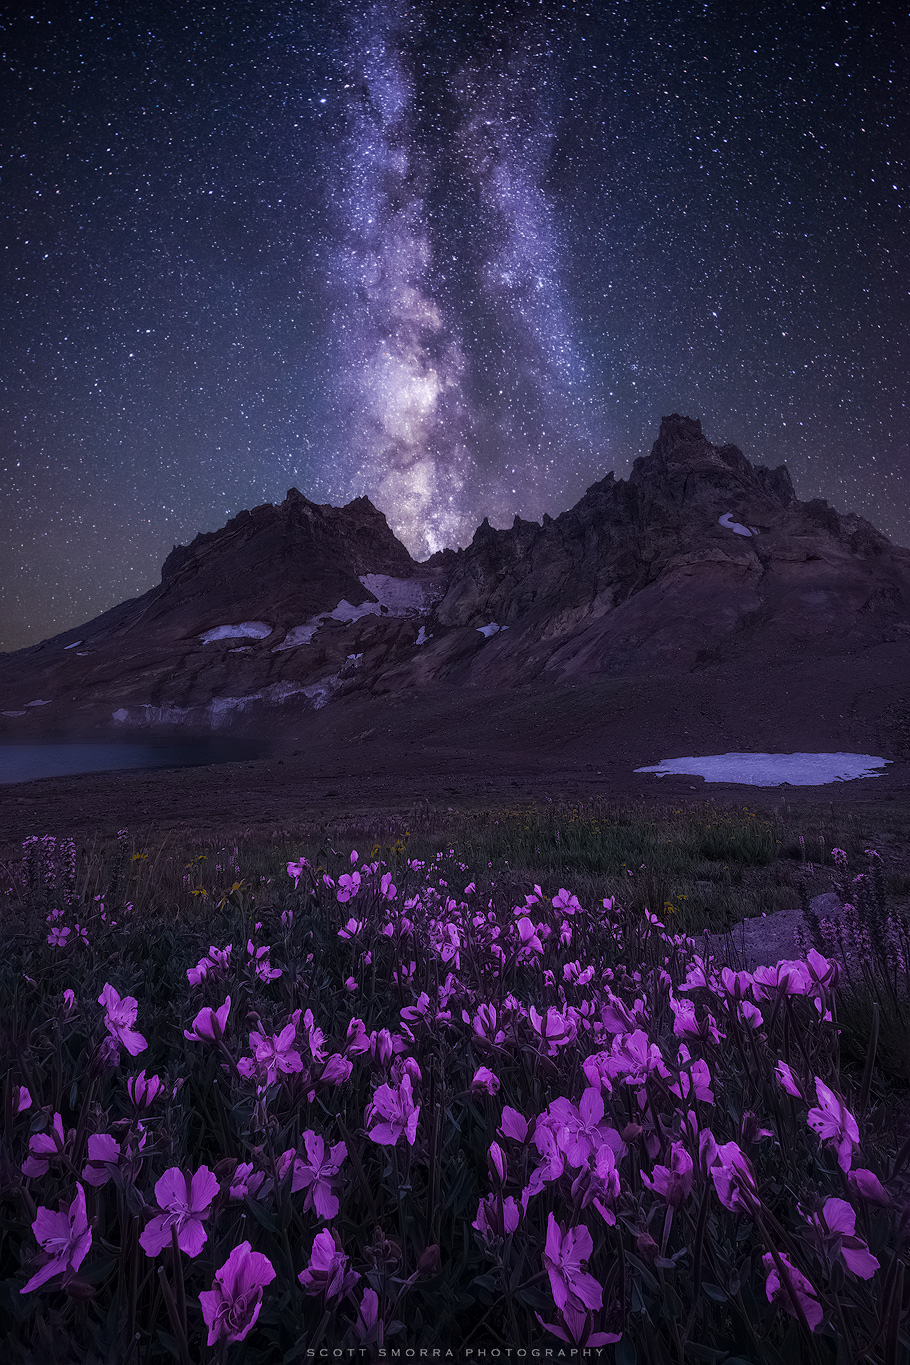 Broken Top, Three Sisters Wilderness, Oregon, Cascades, stars, wildflowers, broad-leaved, willowherb, Milky Way, mountain, photo